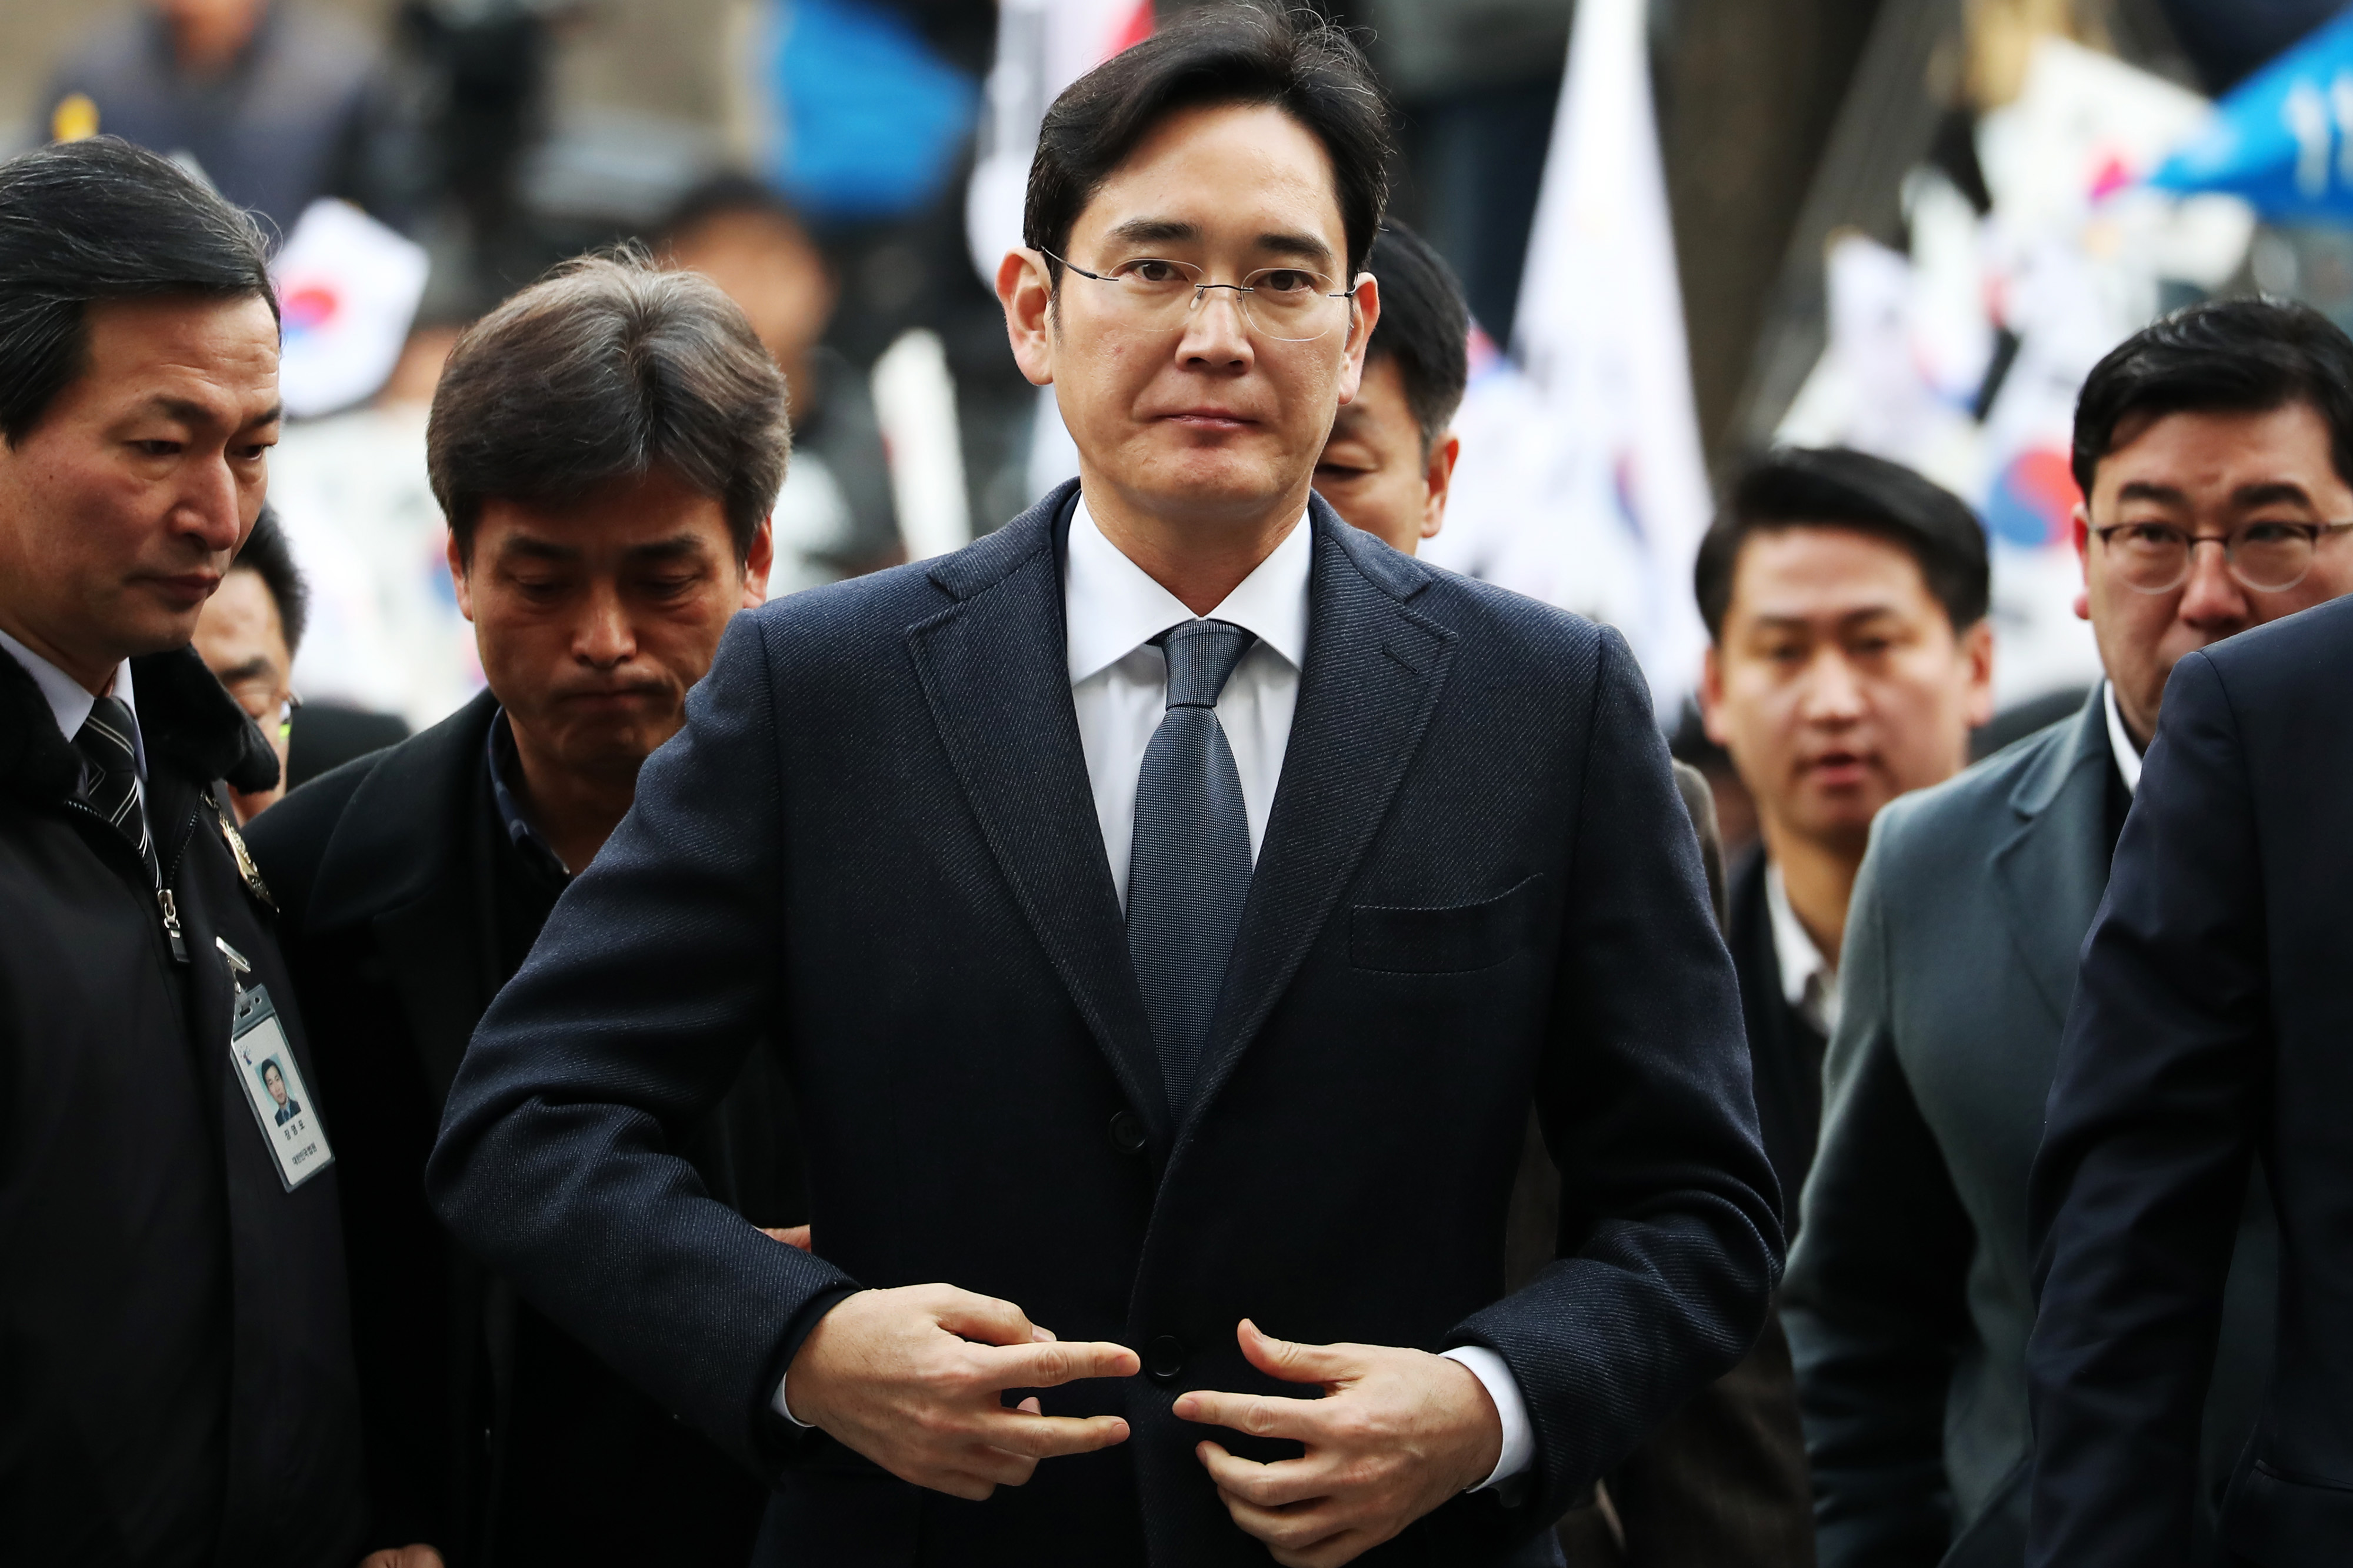 Samsung Vice Chairman Jay Lee is out of jail after his bribery sentence is suspended